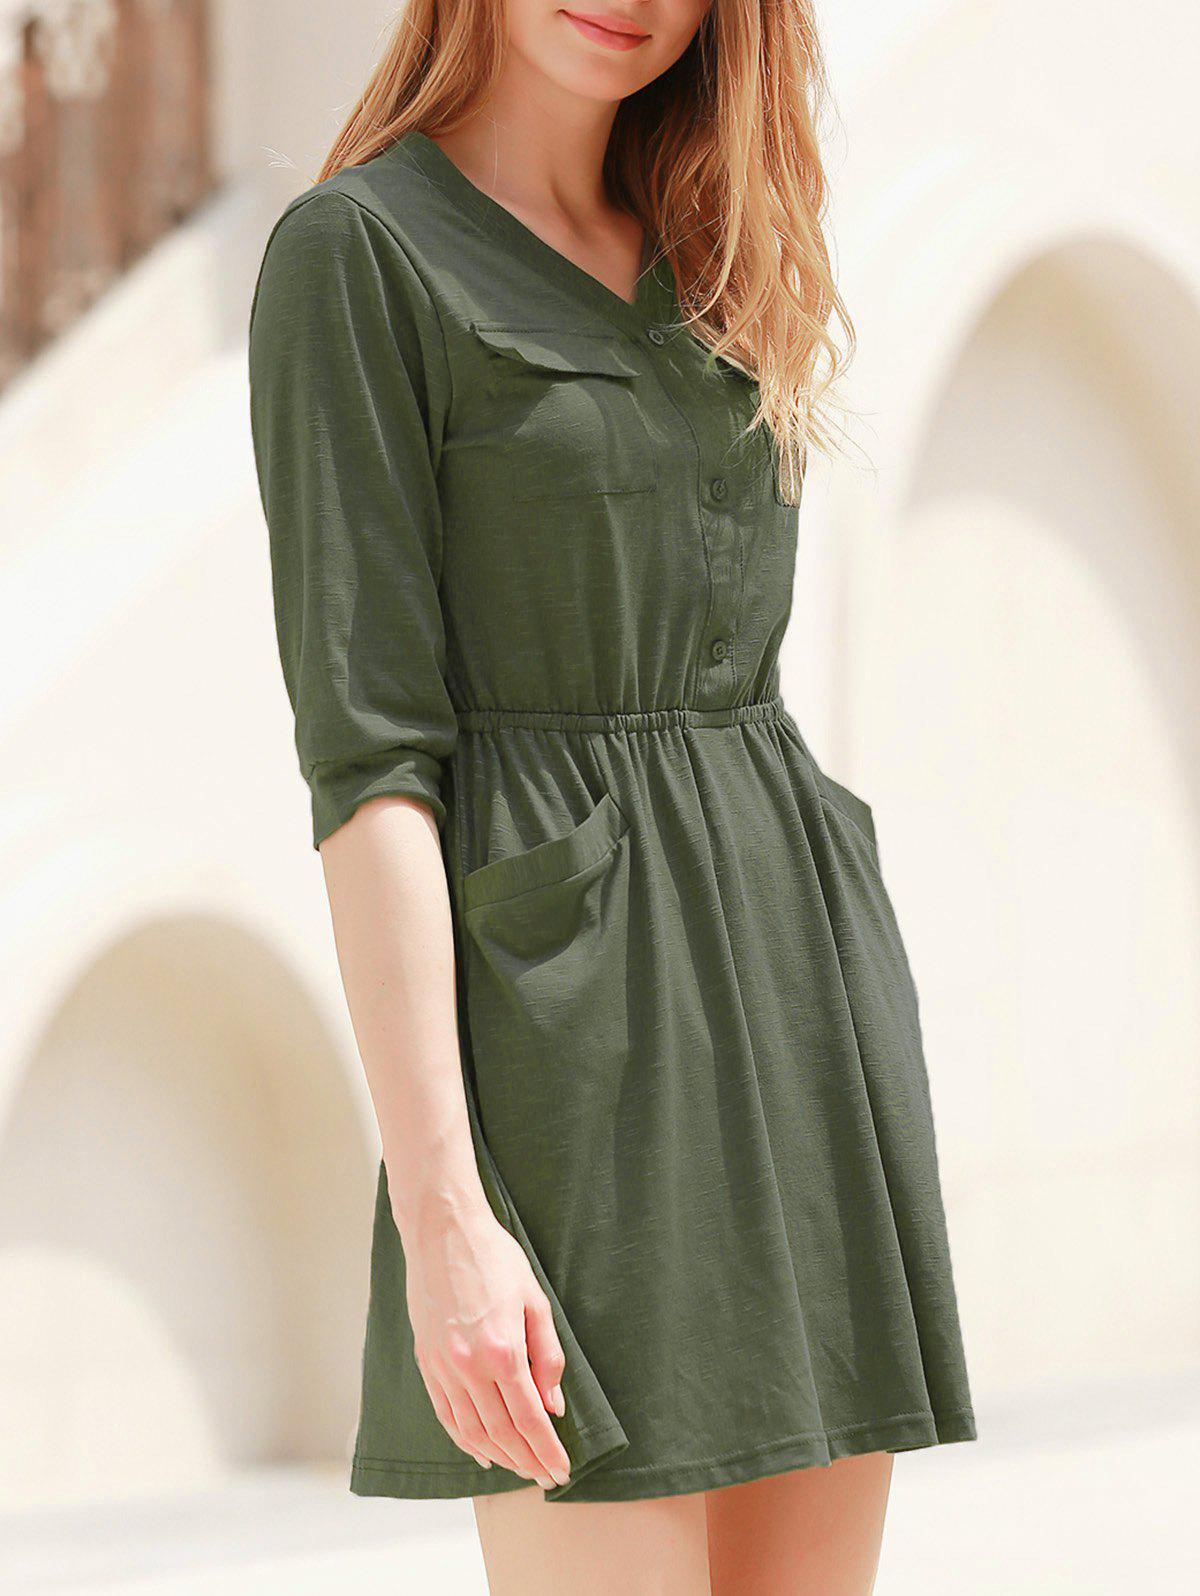 Elegant Solid Color V-Neck 3/4 Sleeve High Waist Dress For Women - ARMY GREEN S